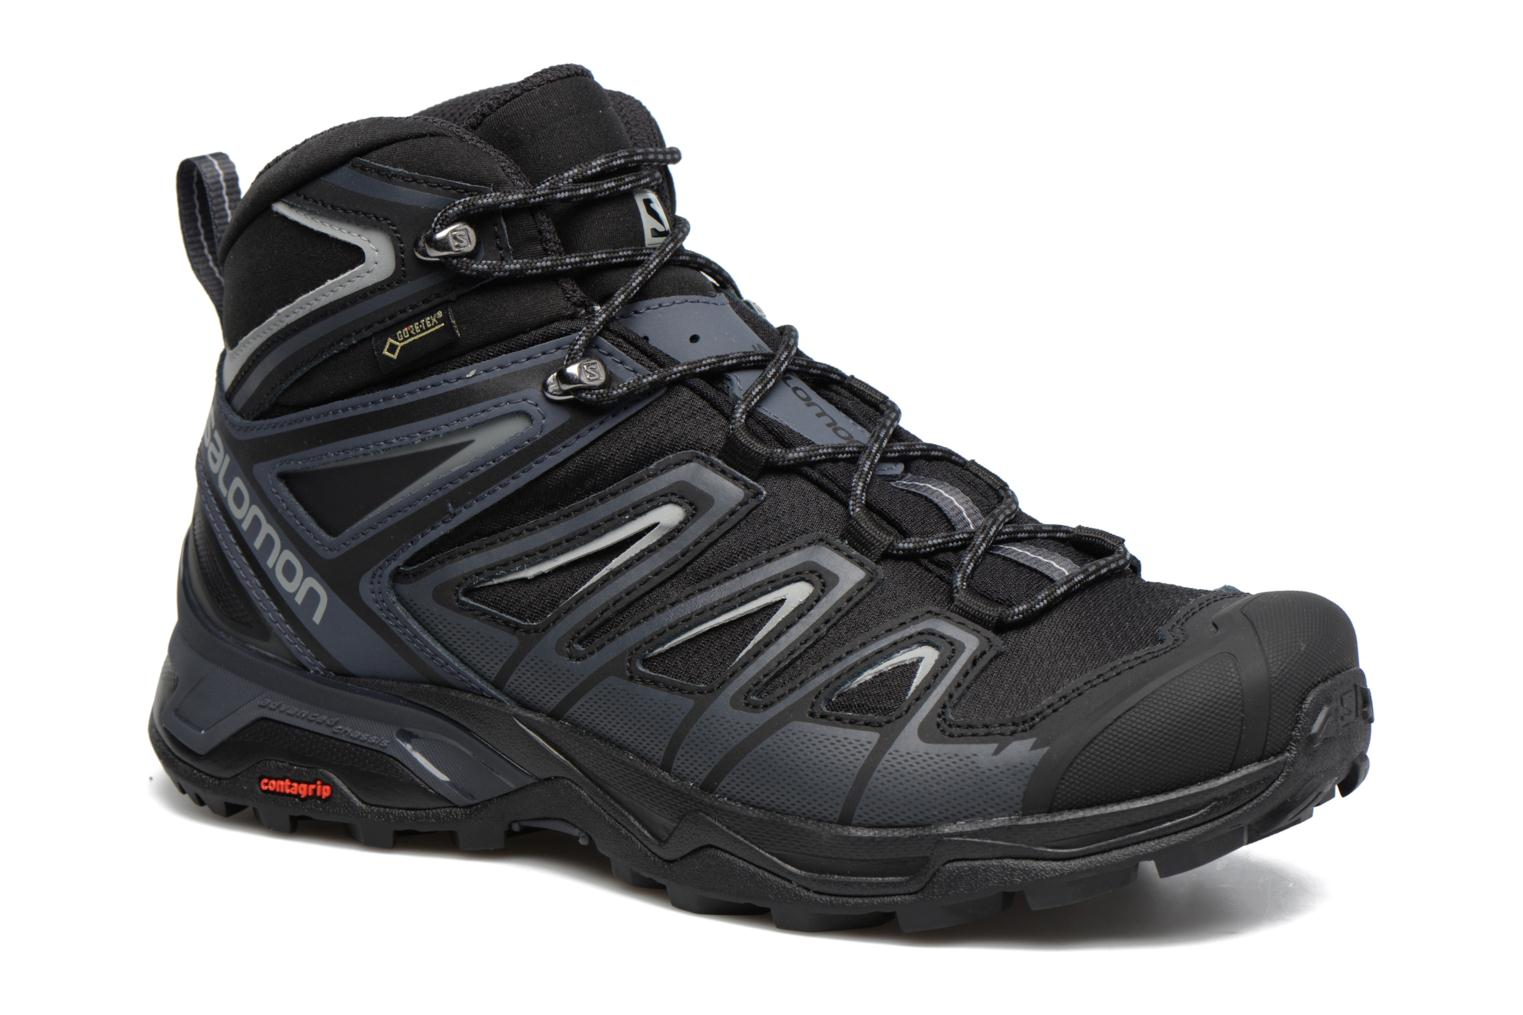 X Ultra 3 Mid Gtx Black/India Ink/Monument